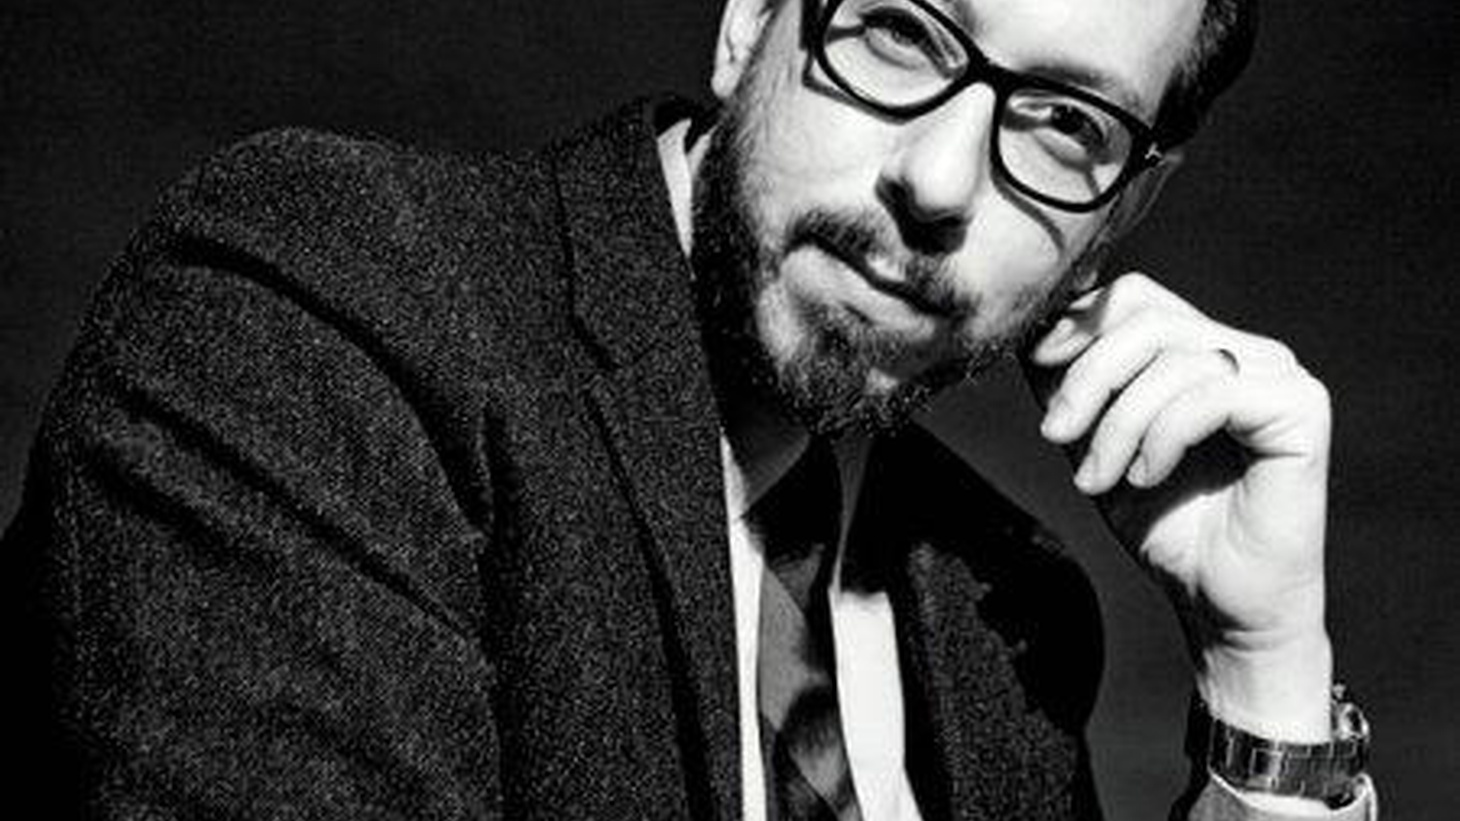 From binge viewing to streaming, Joshua Topolsky on how tech innovation is changing the way we watch TV and movies.